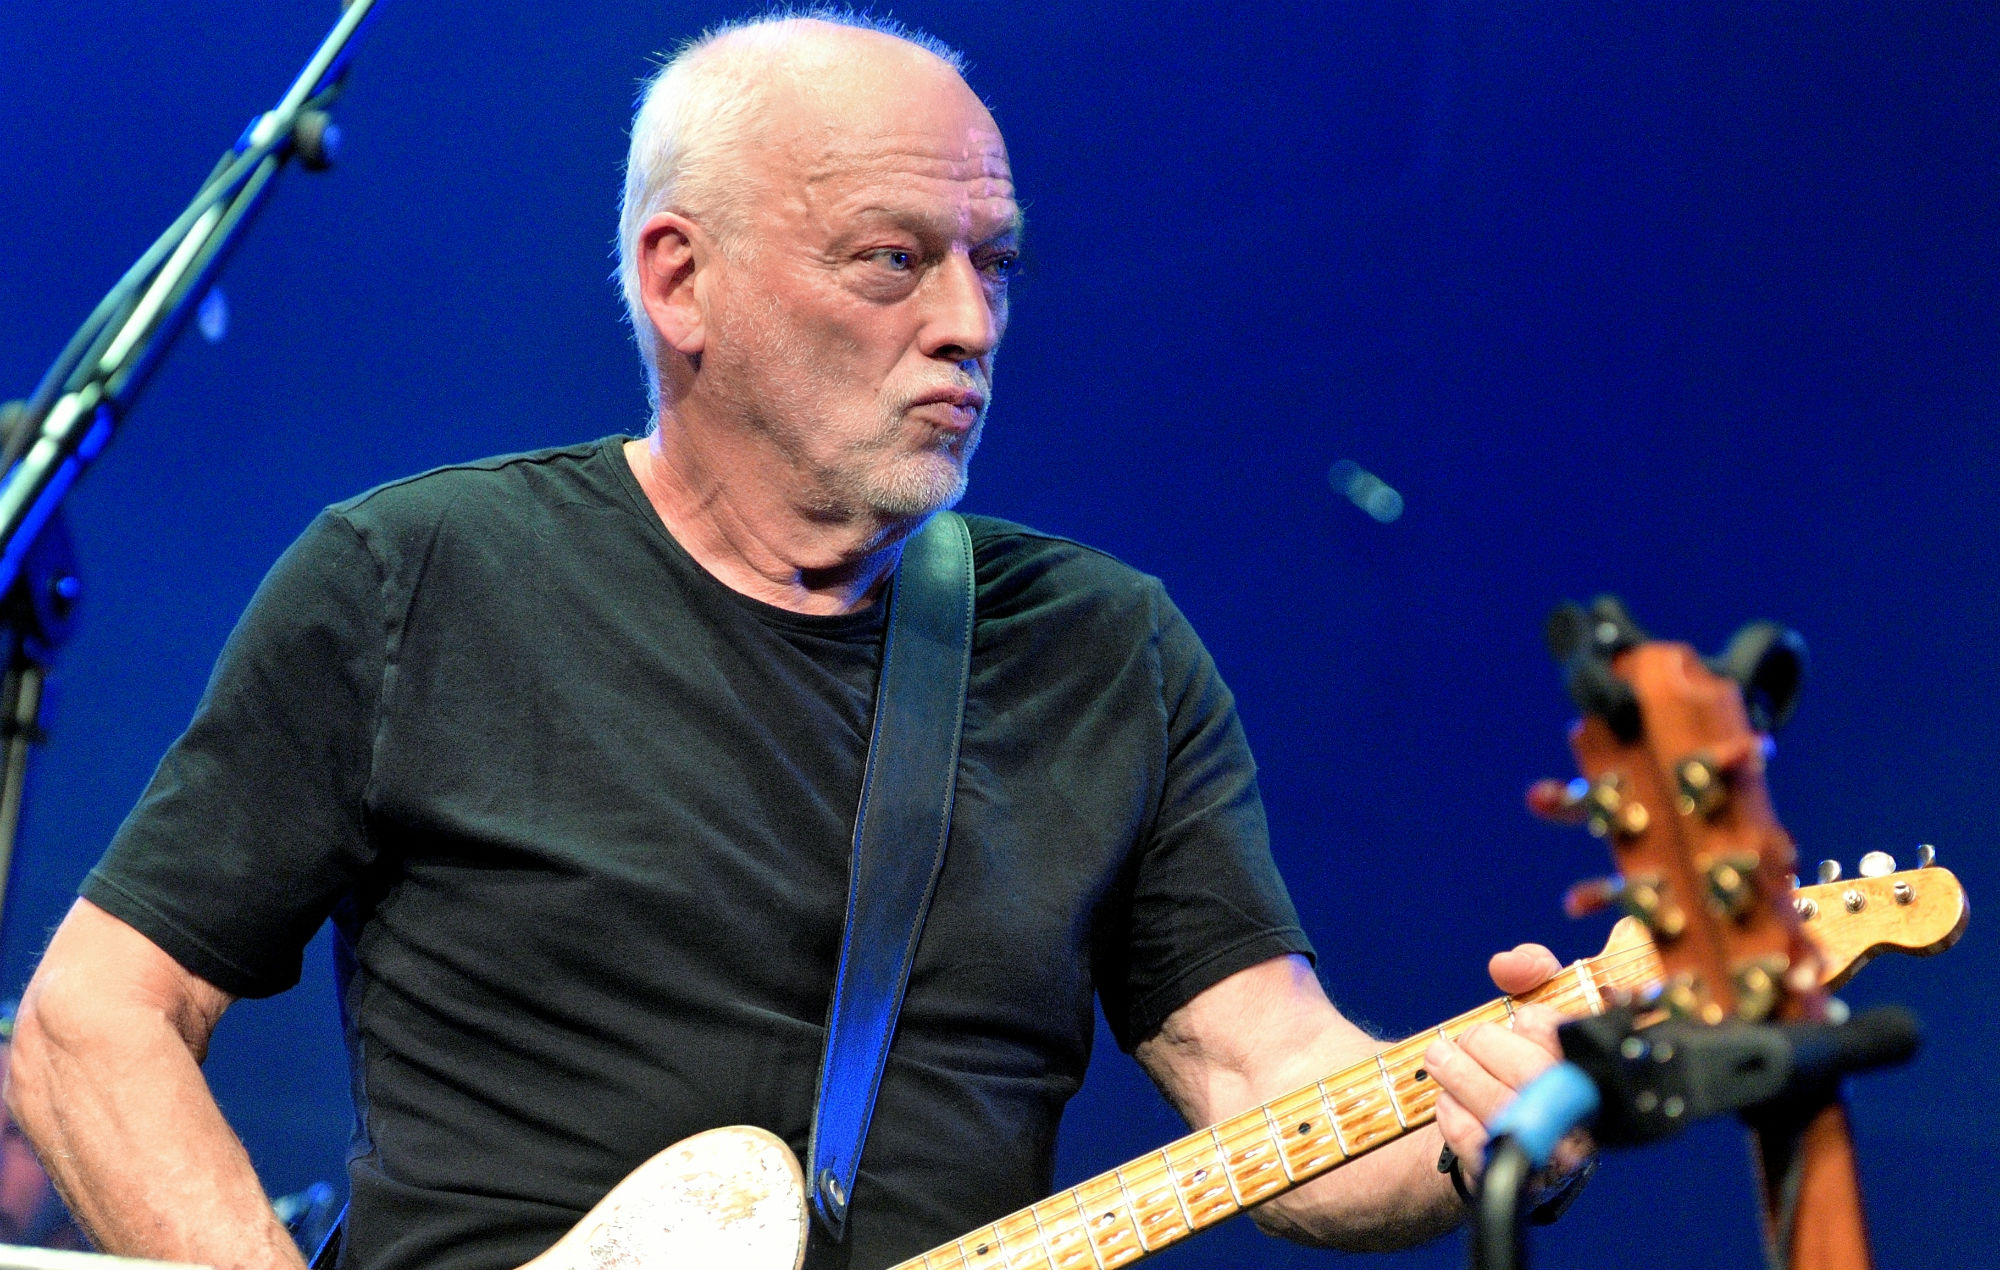 David Gilmour debuts 'Yes, I Have Ghosts', his first new track in five years thumbnail